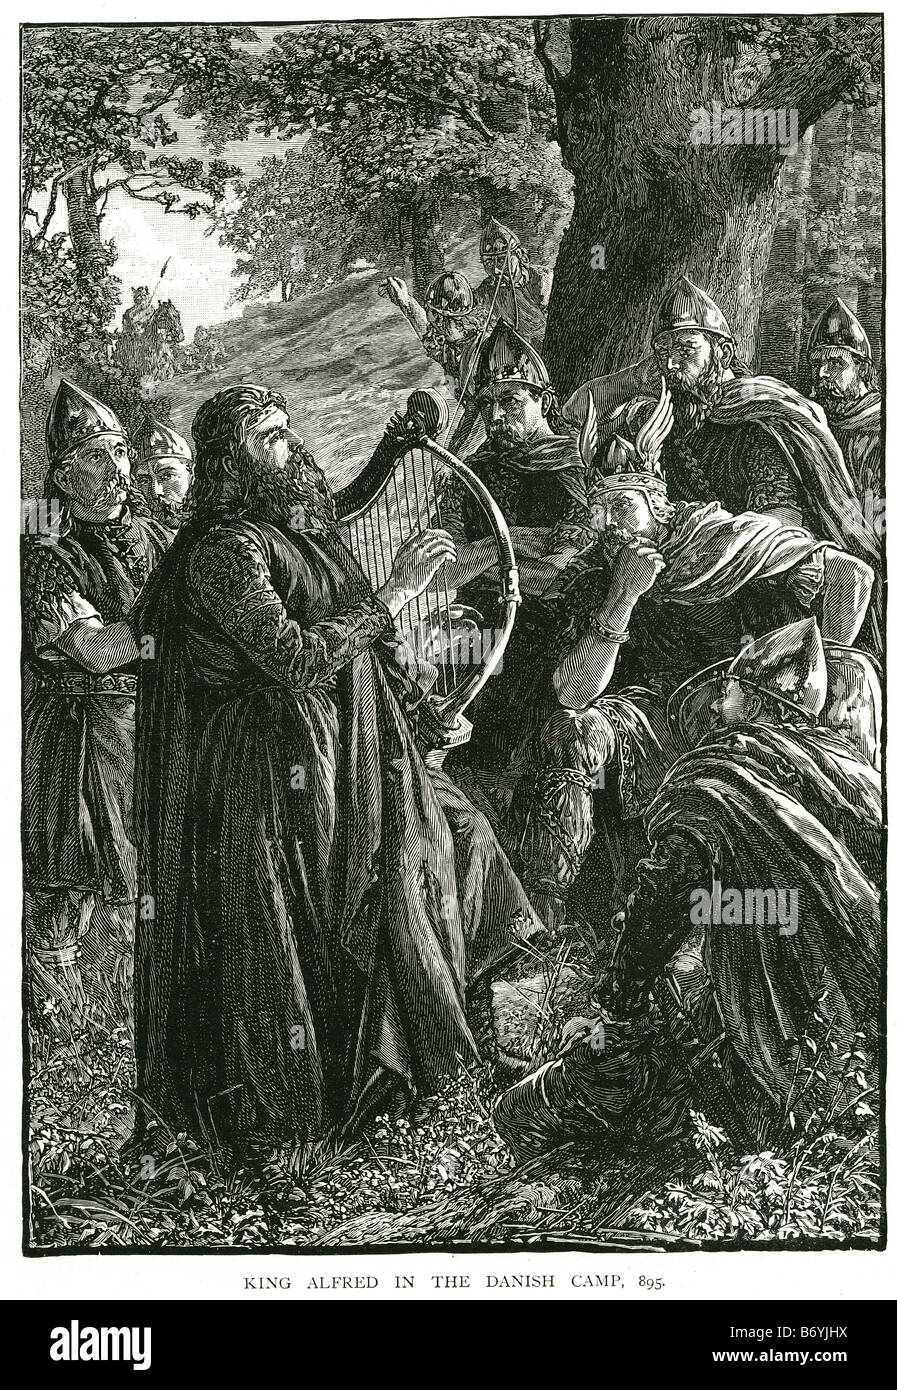 King Alfred the Great in the Danish Camp 895 Anglo-Saxon kingdom - Stock Image